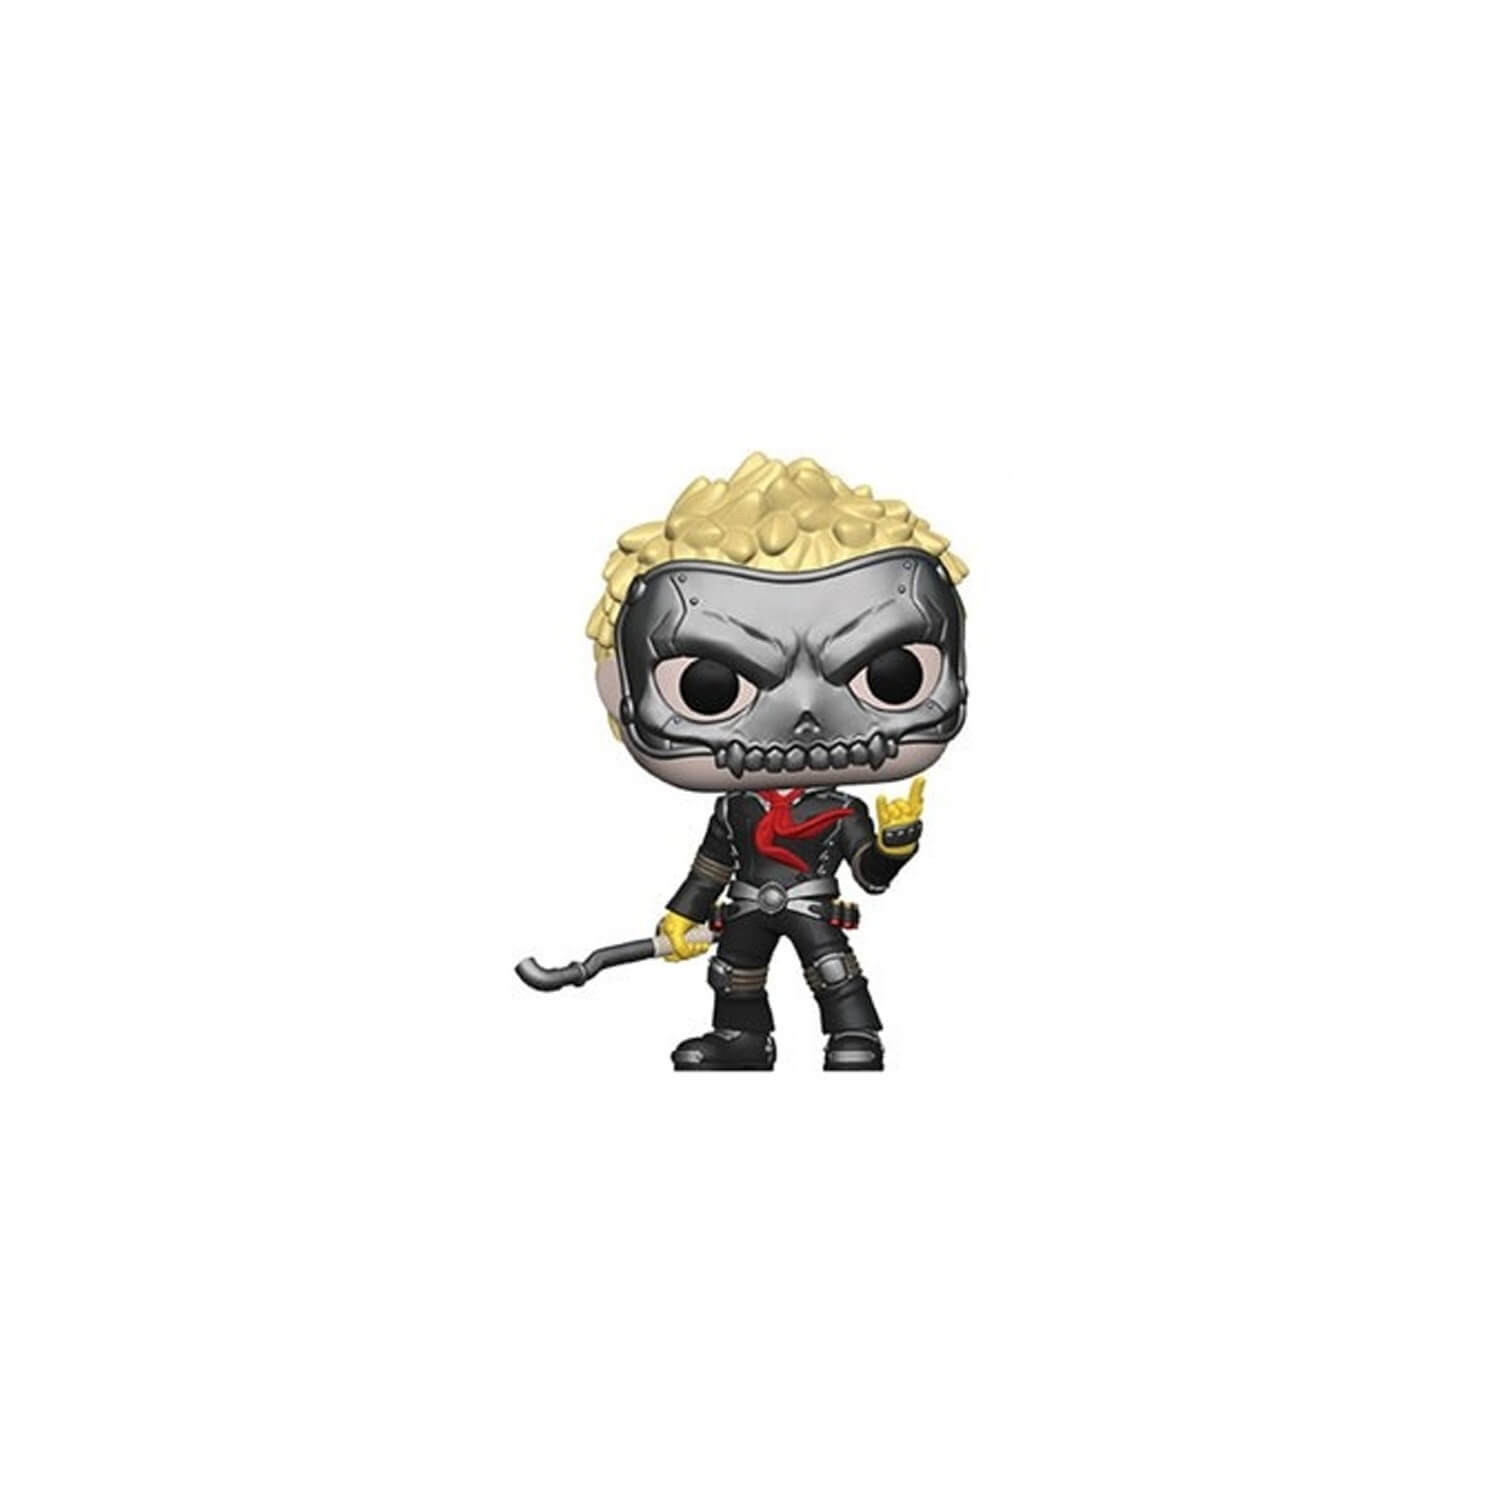 Figurine Persona 5 Skull Pop 10cm During your time in persona 5's second palace you'll be introduced to treasure demons. foxchip collector